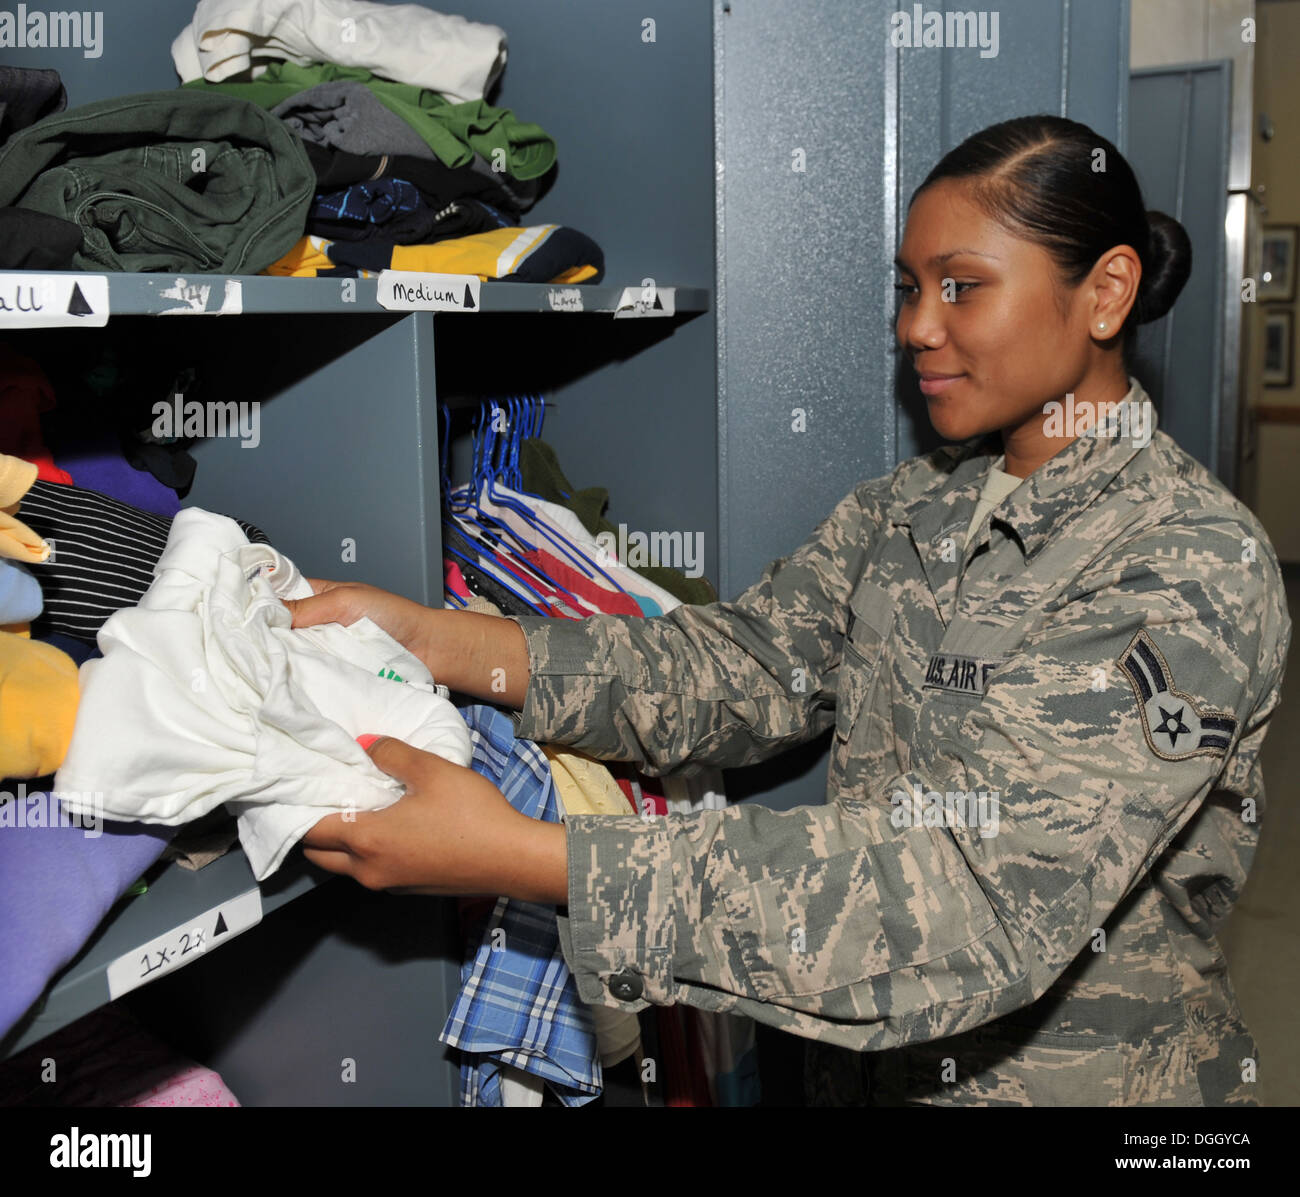 Airman 1st Class Jacklyn Neil folds clothes at the 379th Air Expeditionary Wing in Southwest Asia, Oct. 10, 2013. Personnel Support for Contingency Operations PERSCO personnel maintain clothing for members who have to take emergency leave and depart from - Stock Image